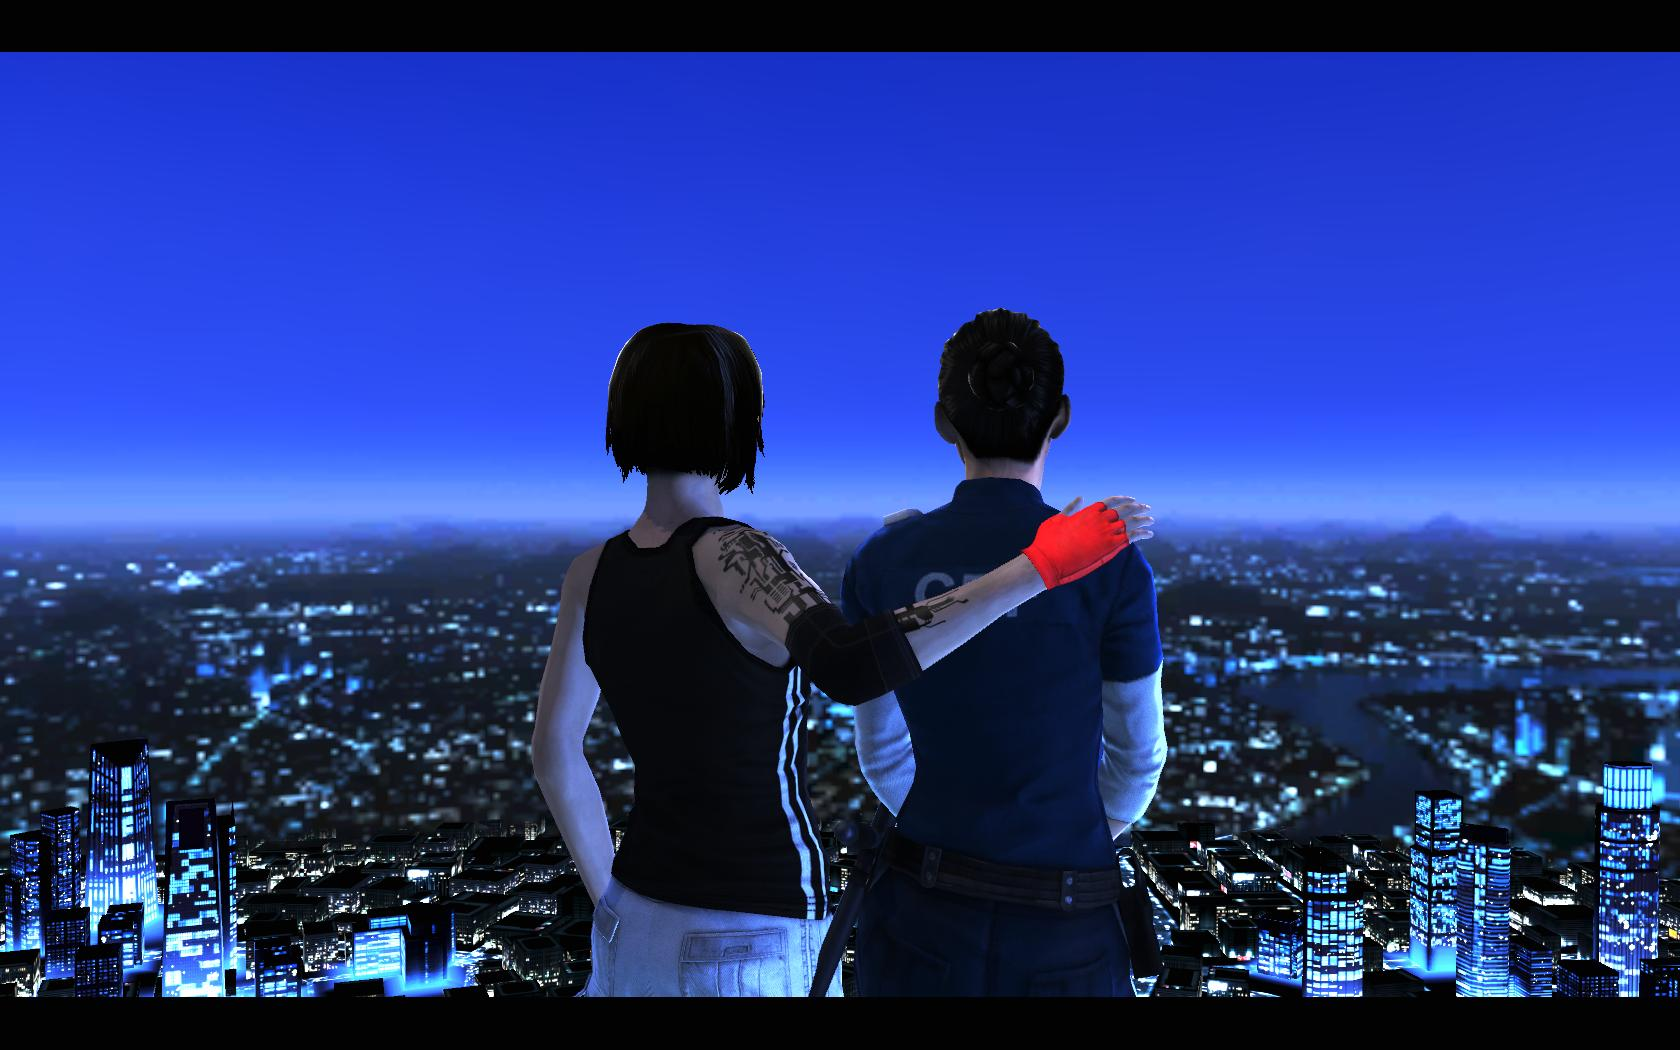 MirrorsEdge 2009-12-04 22-26-18-28